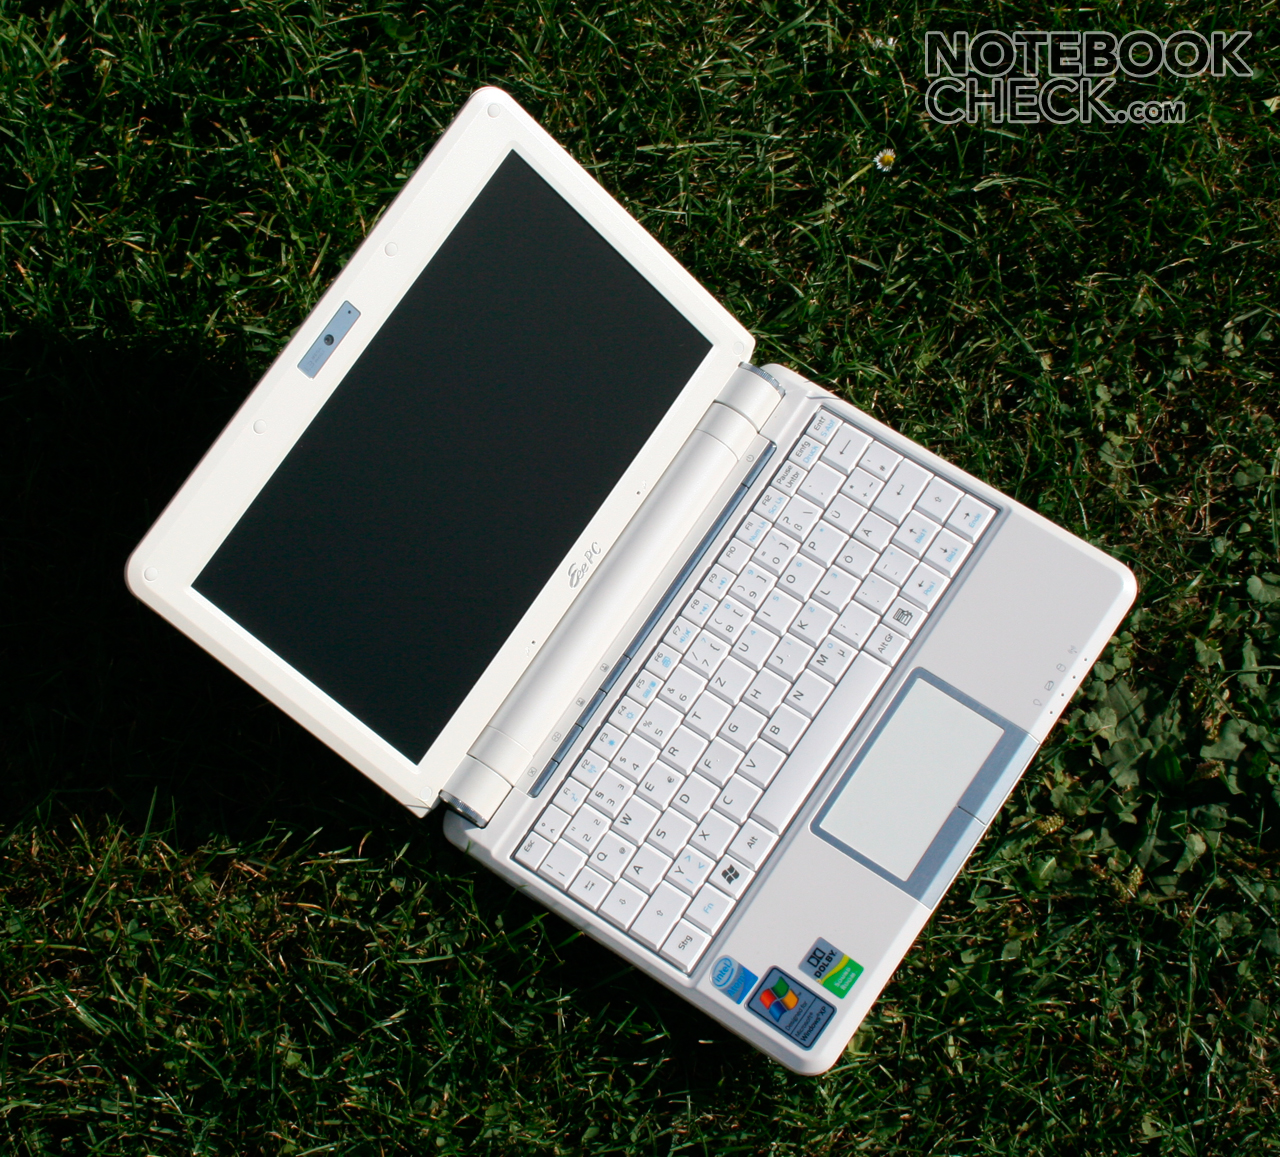 Asus eee pc 900 xp wireless lan driver v5 3 0 45 photos asus.